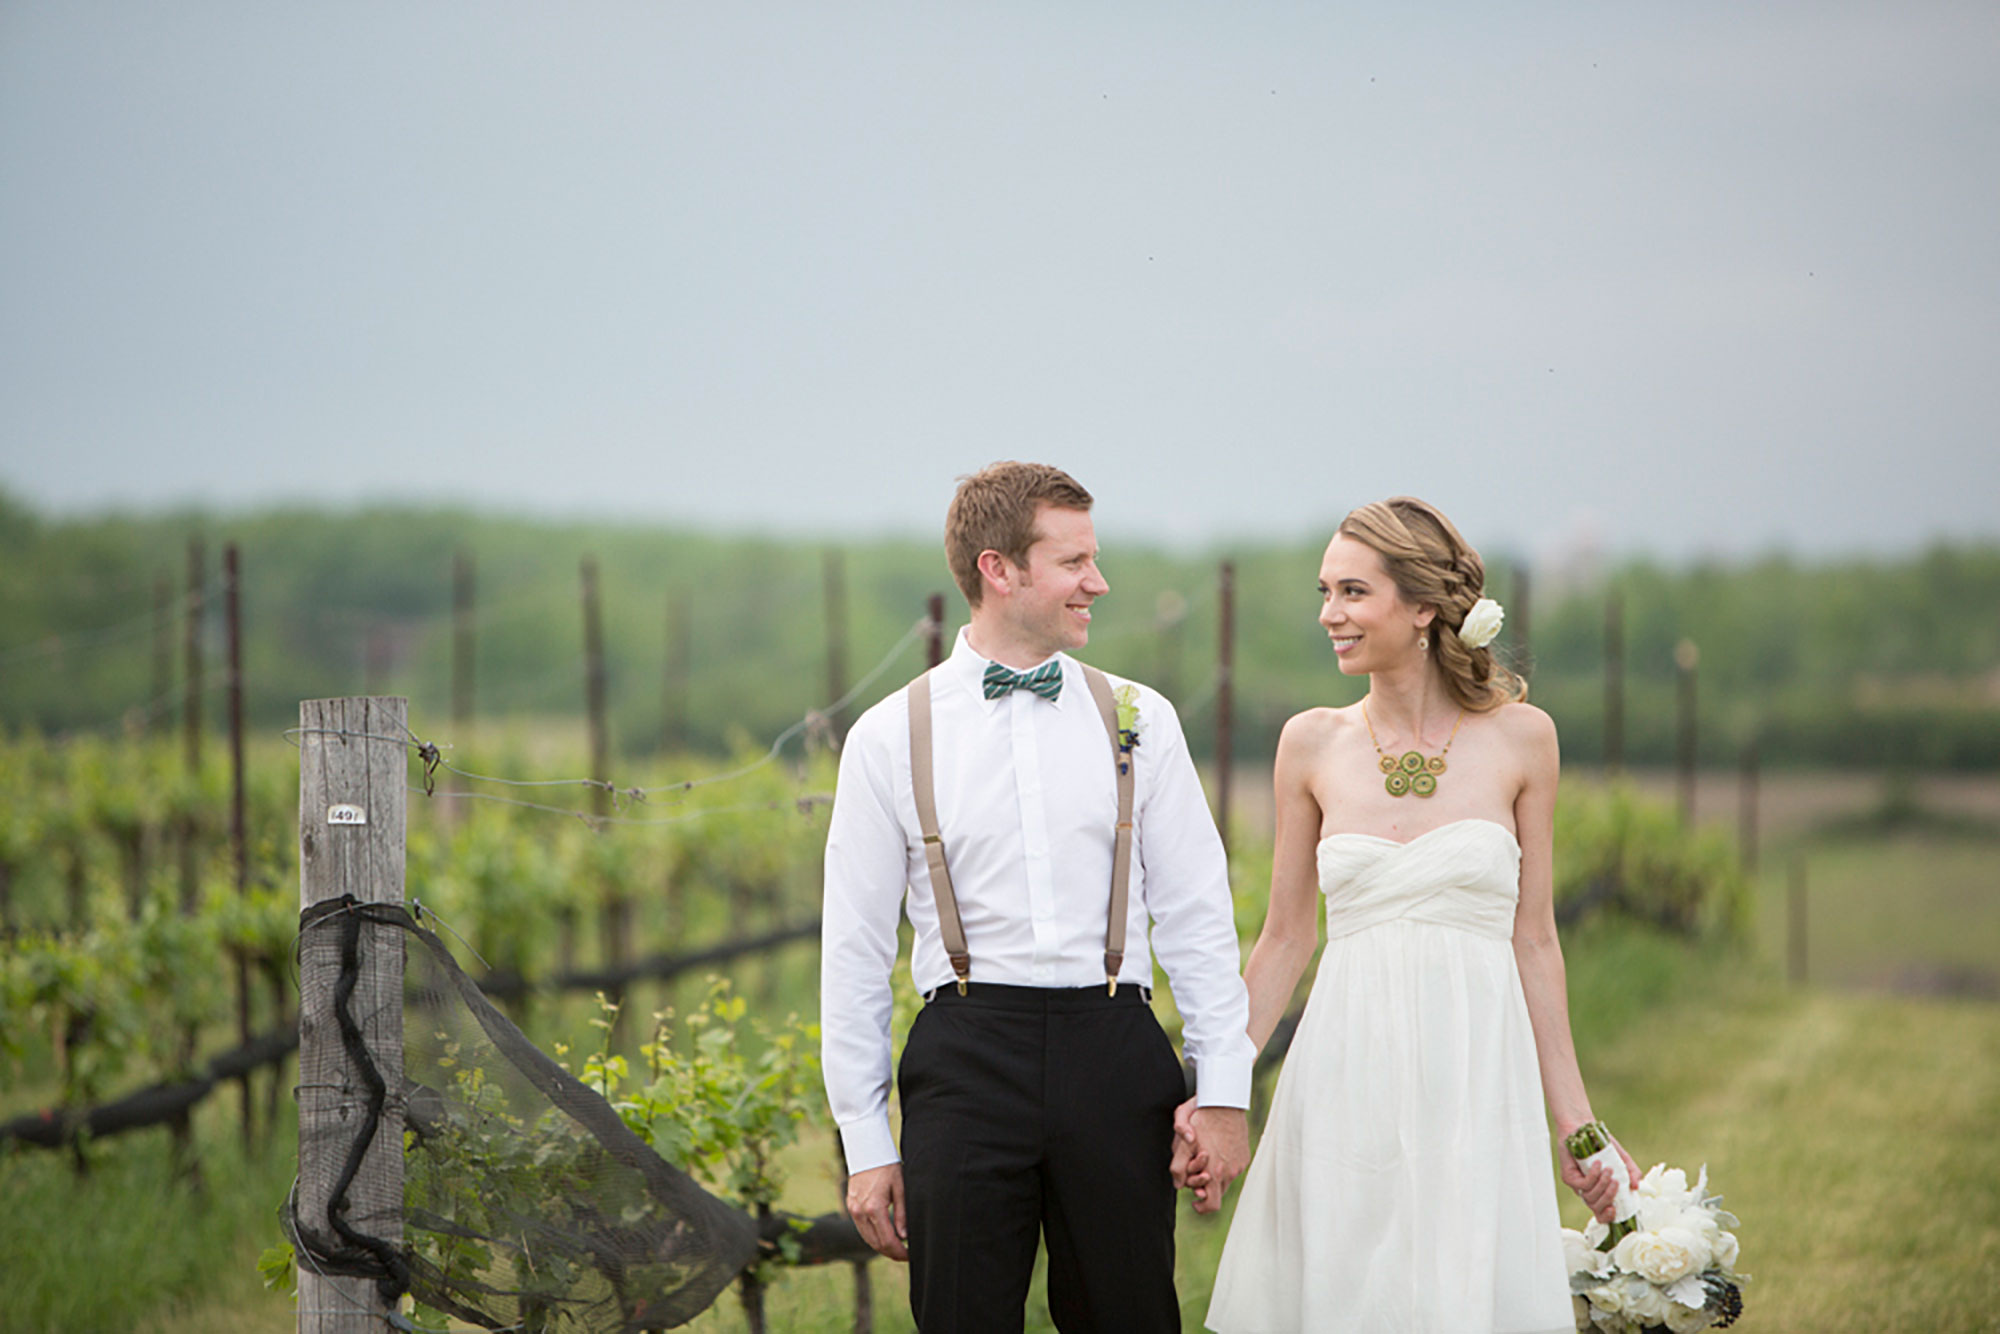 Ravine-Vineyard-Editorial-Vineyard-Bride-photo-by-Philosophy-Studios-0022.JPG